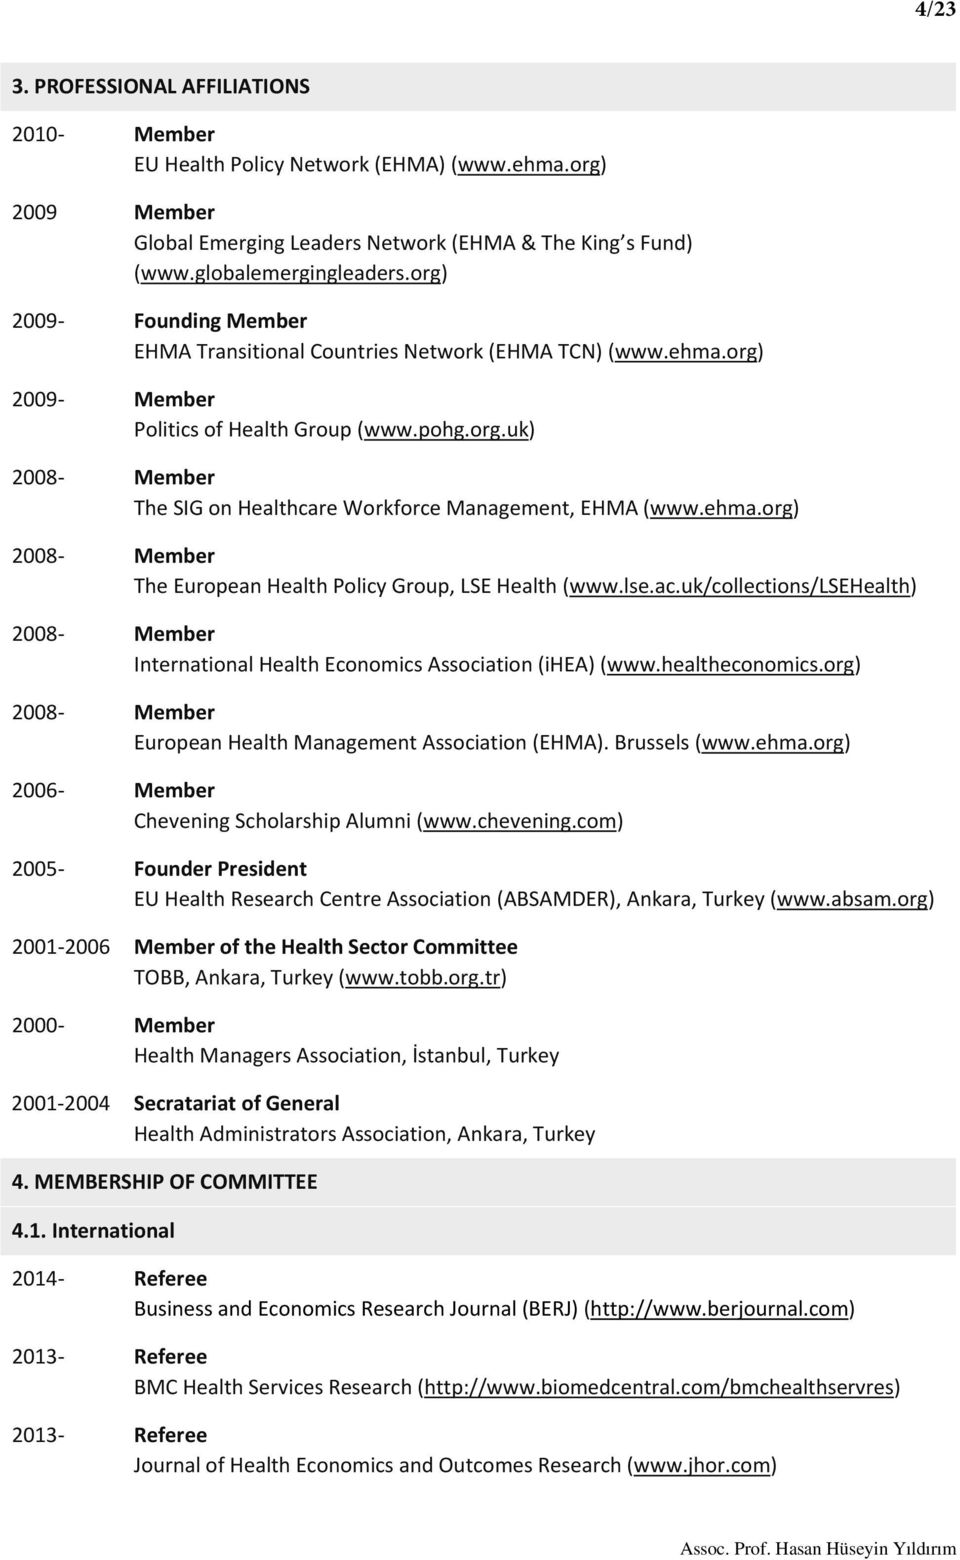 ehma.org) 2008 Member The European Health Policy Group, LSE Health (www.lse.ac.uk/collections/lsehealth) 2008 Member International Health Economics Association (ihea) (www.healtheconomics.